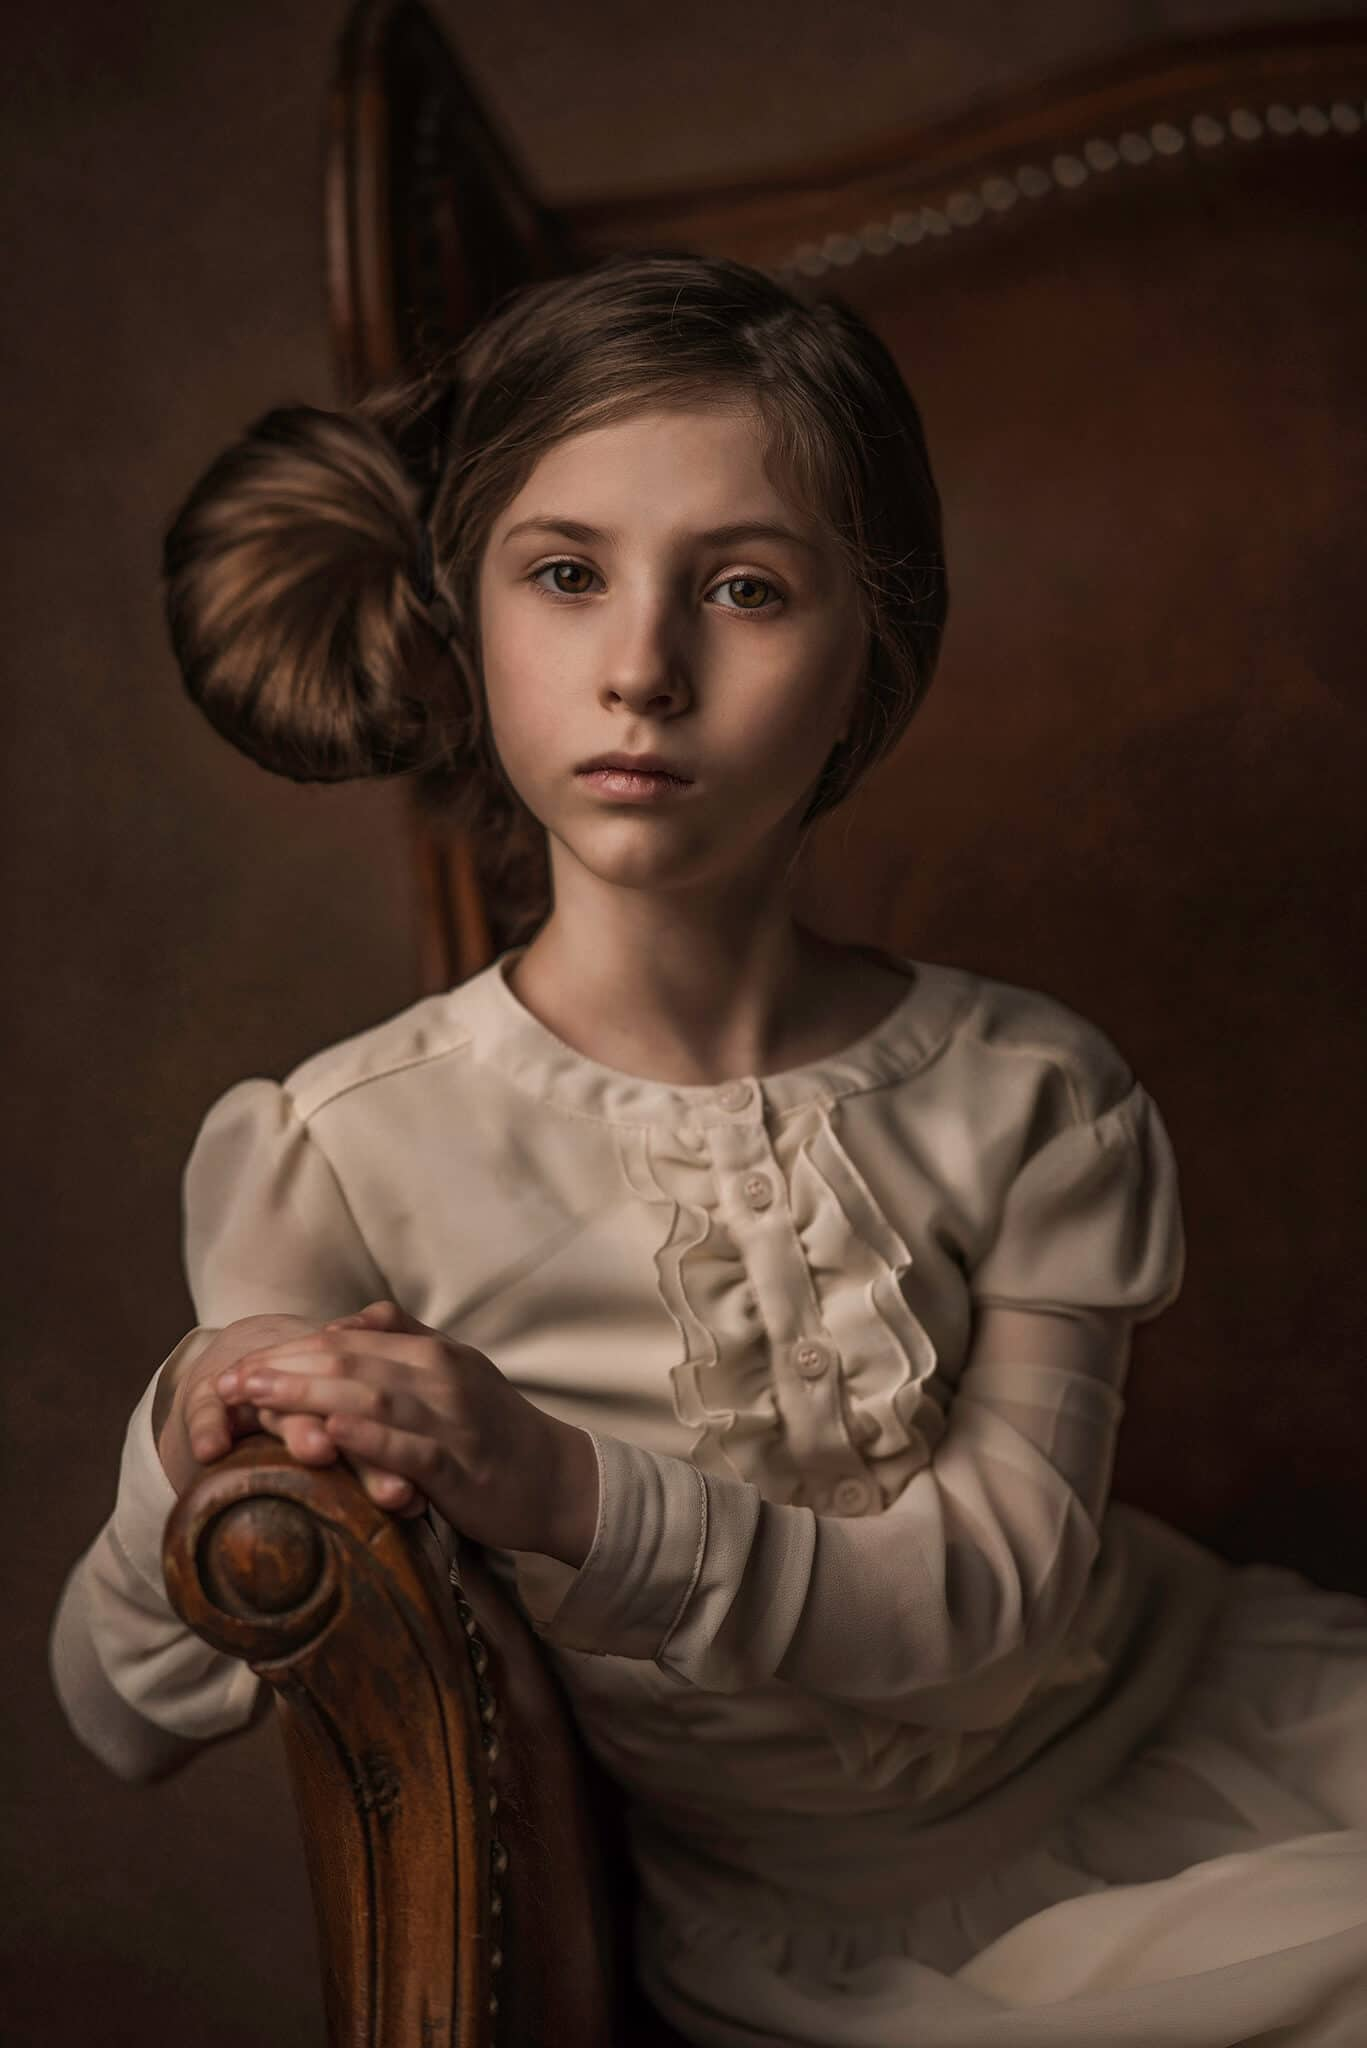 Children photography - fine art